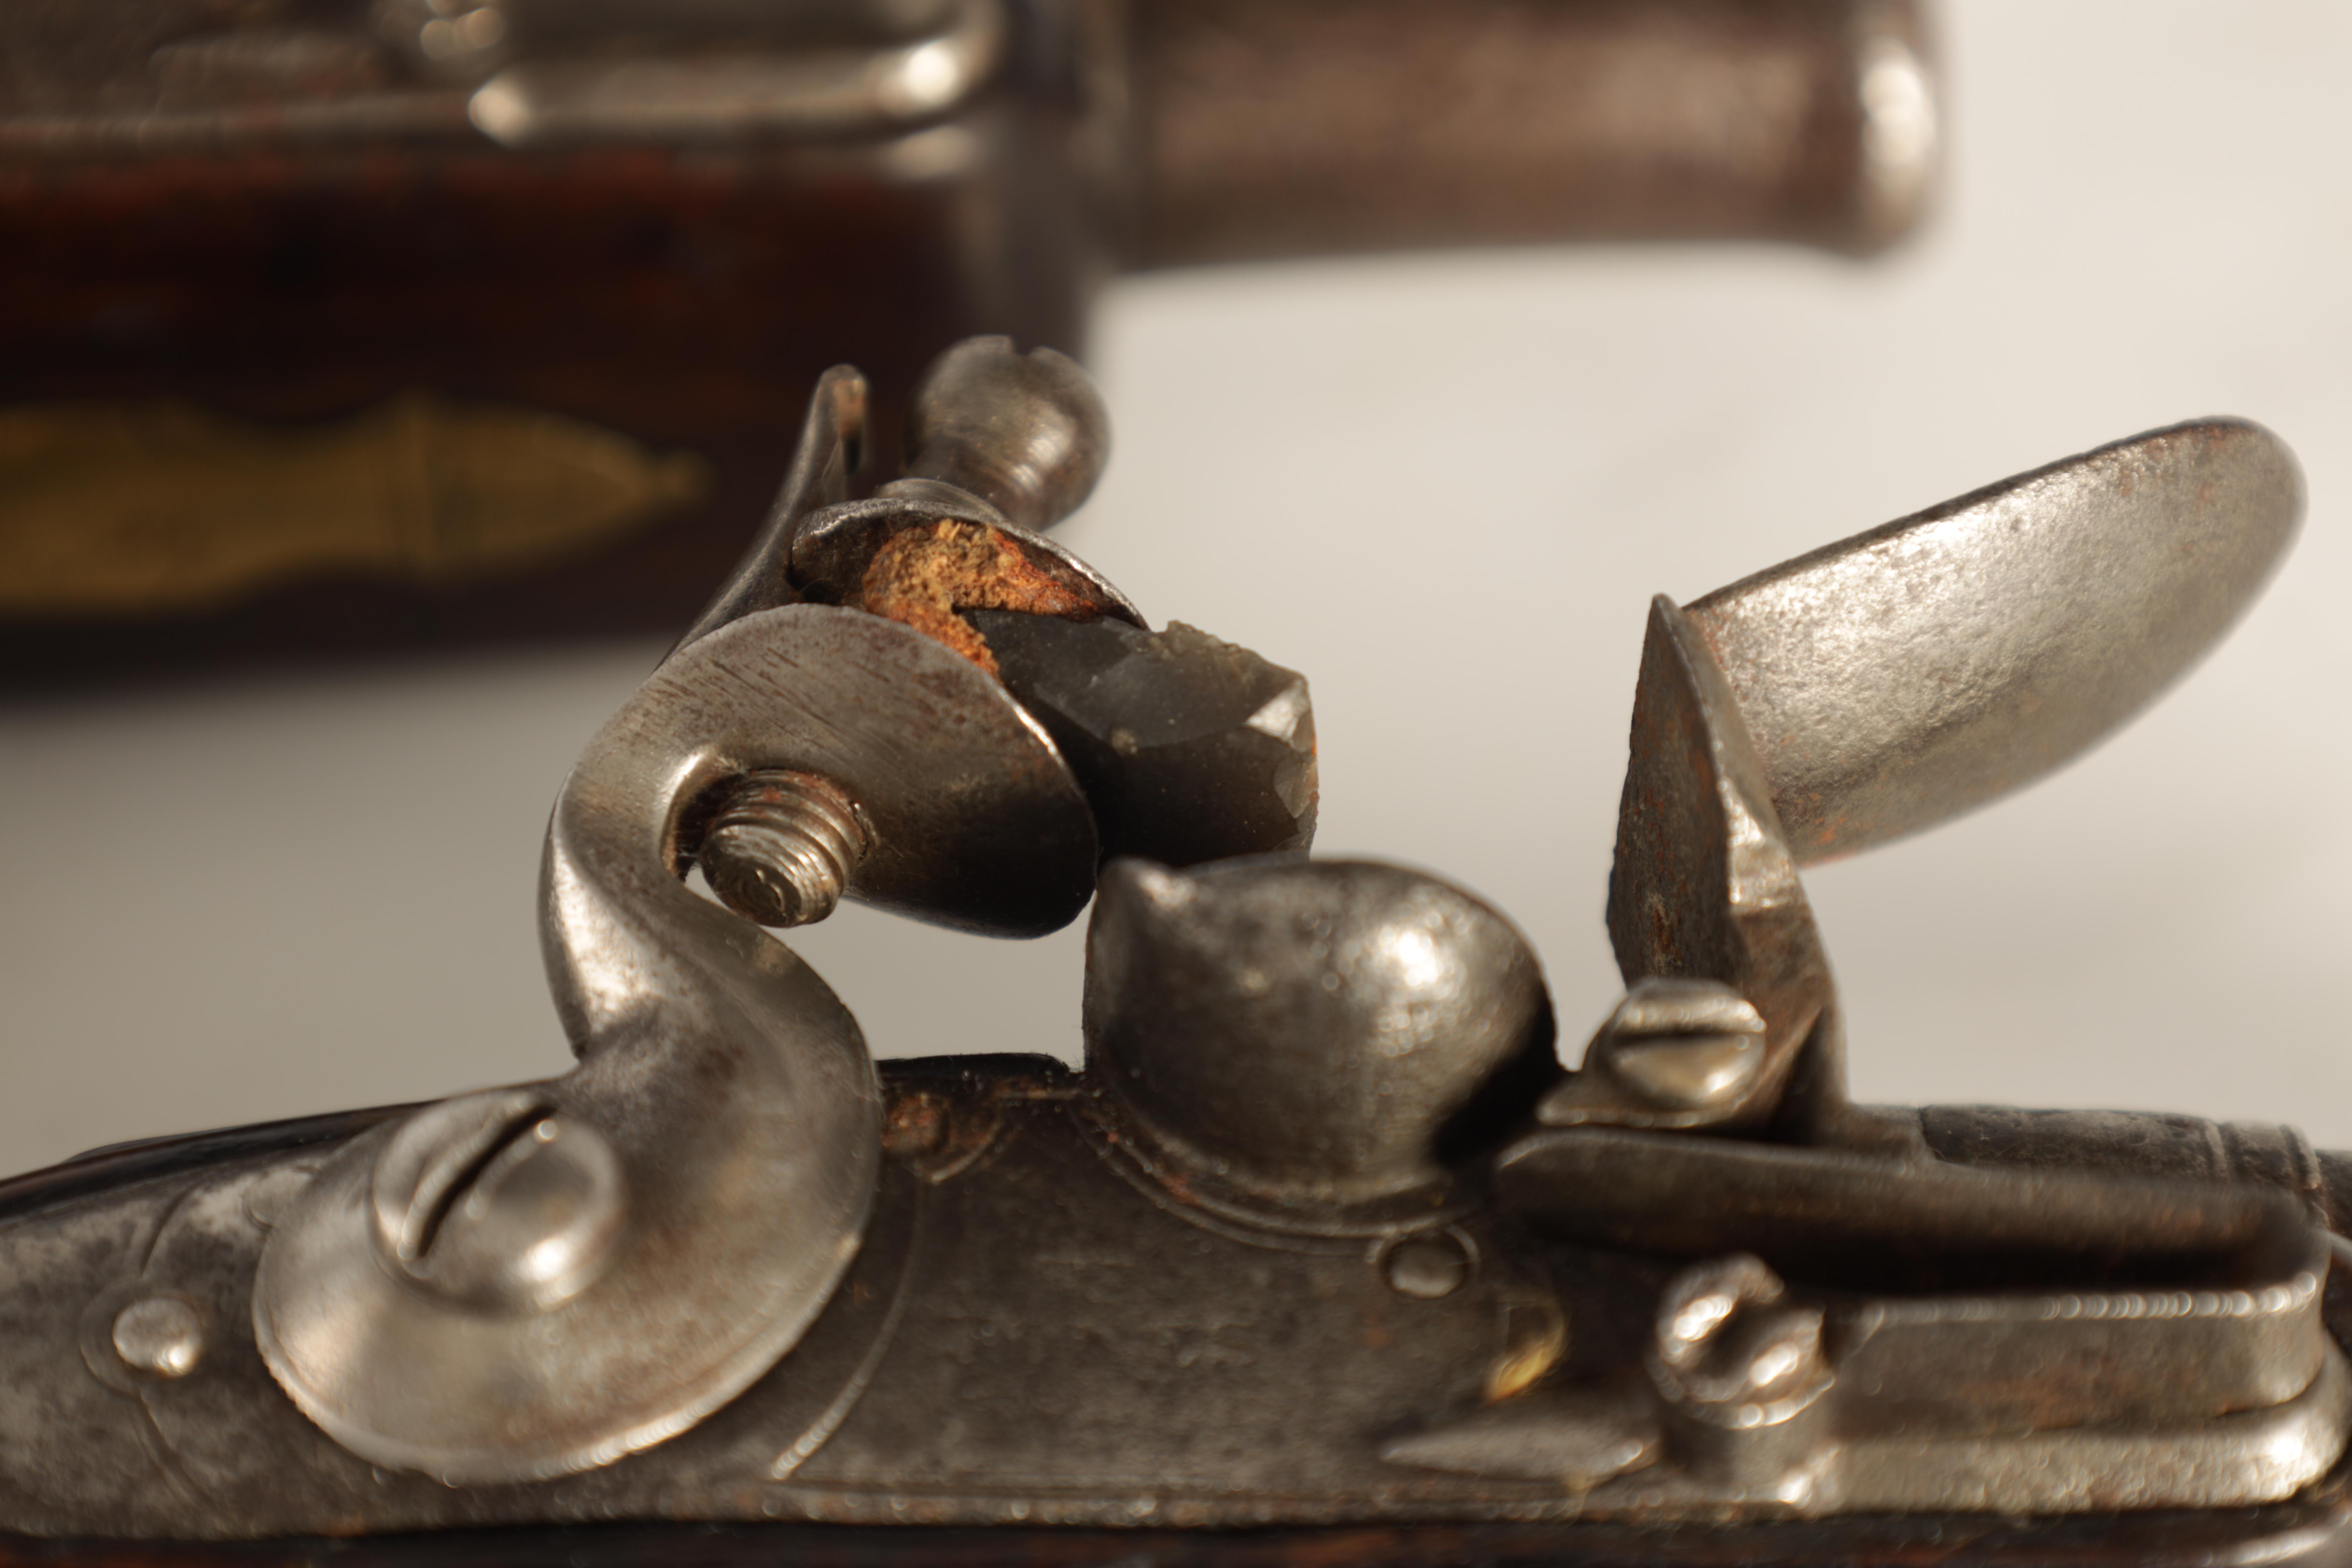 T. JONES. A PAIR OF EARLY 18TH CENTURY FLINTLOCK POCKET PISTOLS with turn-off cannon barrel, - Image 14 of 14